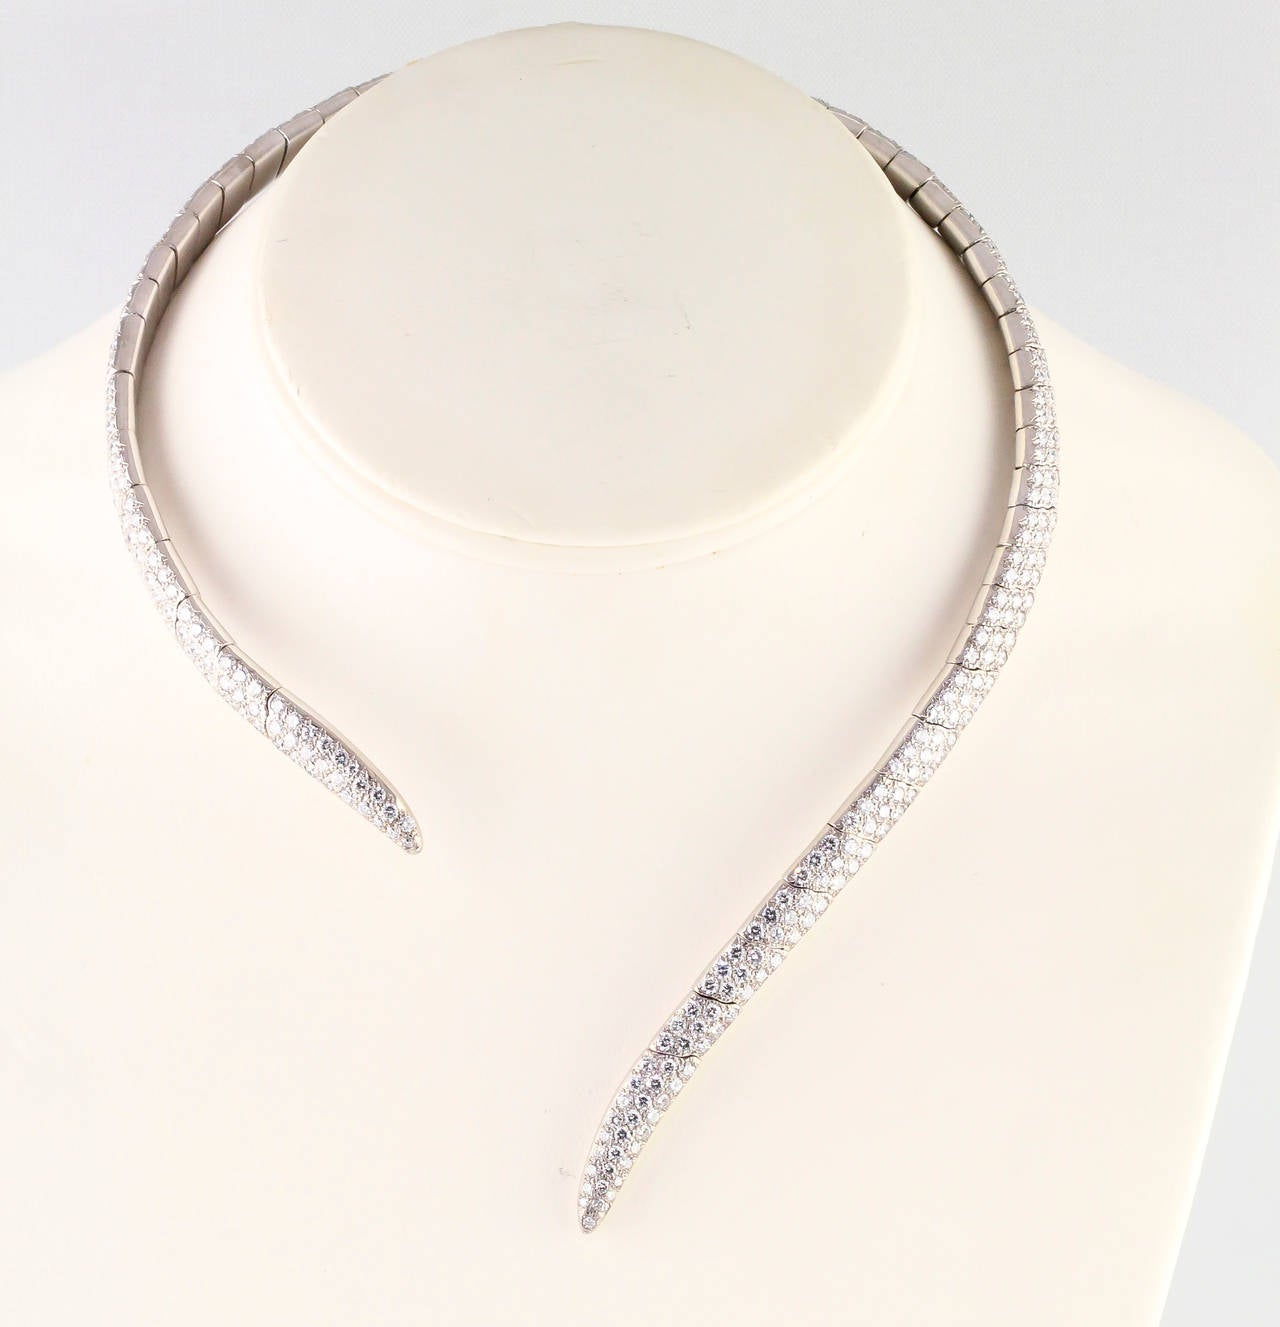 Impressive and bold diamond and 18K white gold necklace by Boucheron. It features very high grade round brilliant cut diamonds, approx. 18.0-20.0cts total weight. The flexible nature of its design displays a modern aesthetic yet comfortable